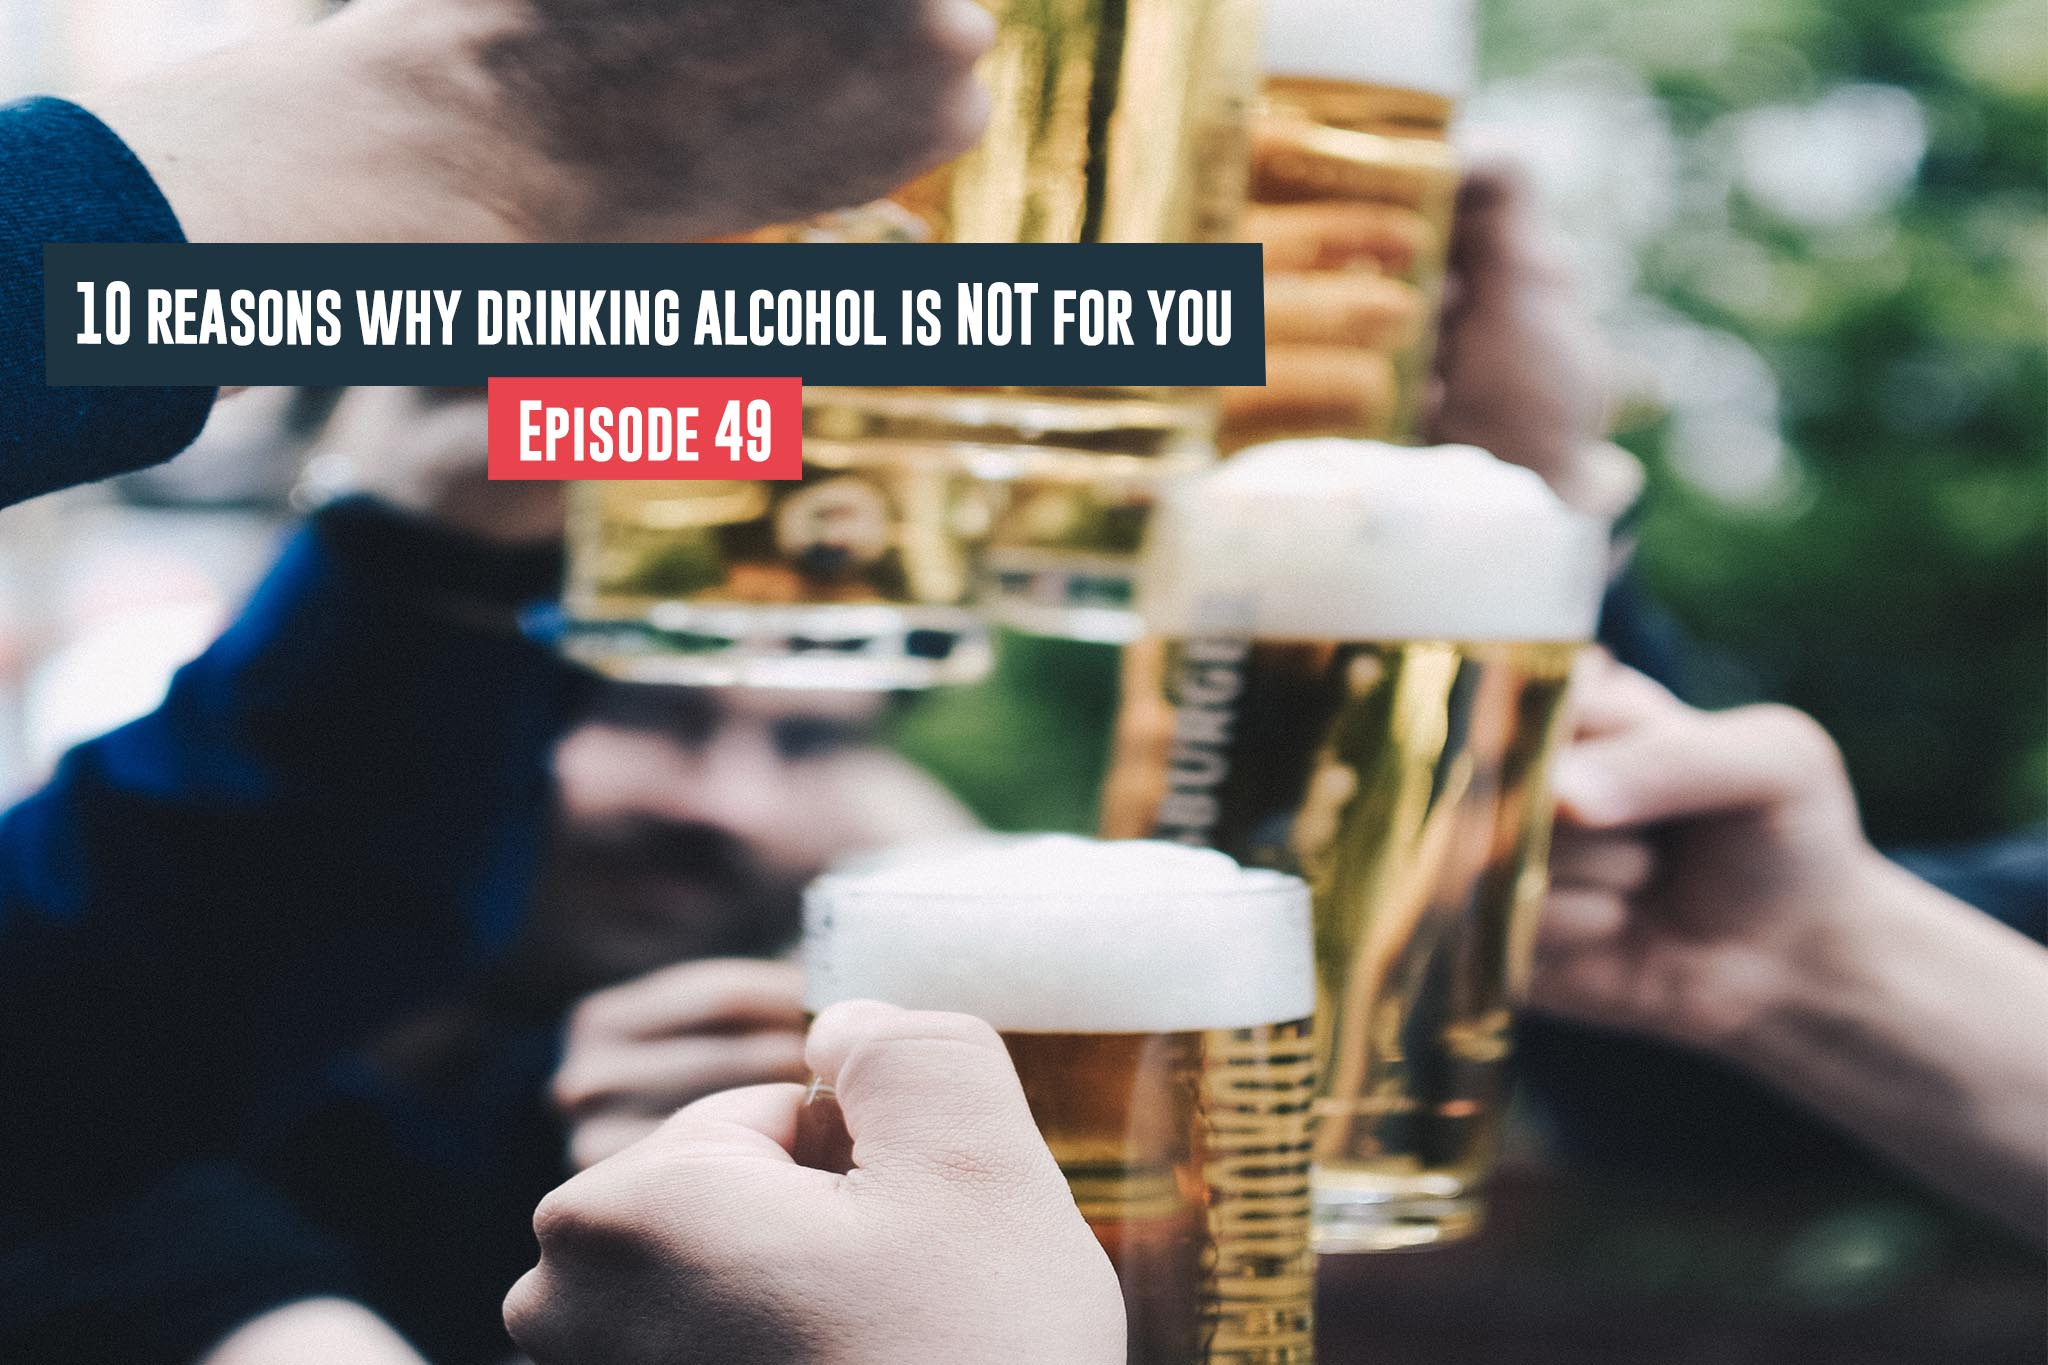 Drinking Alcohol Is NOT For You